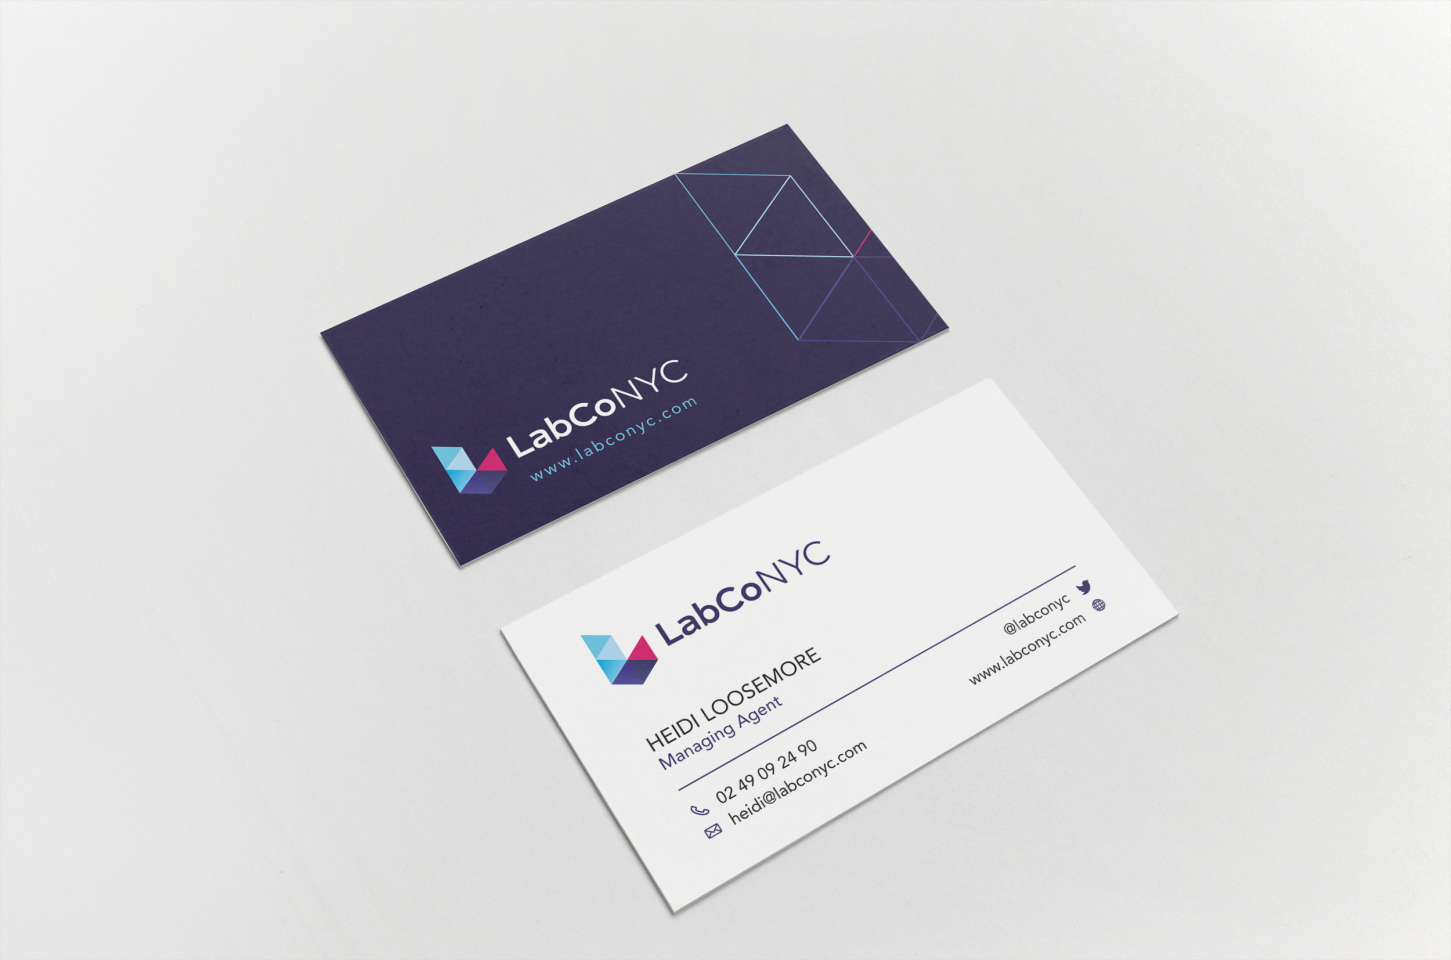 Designs | Modern & Elegant Business Cards for Startup Incubator ...